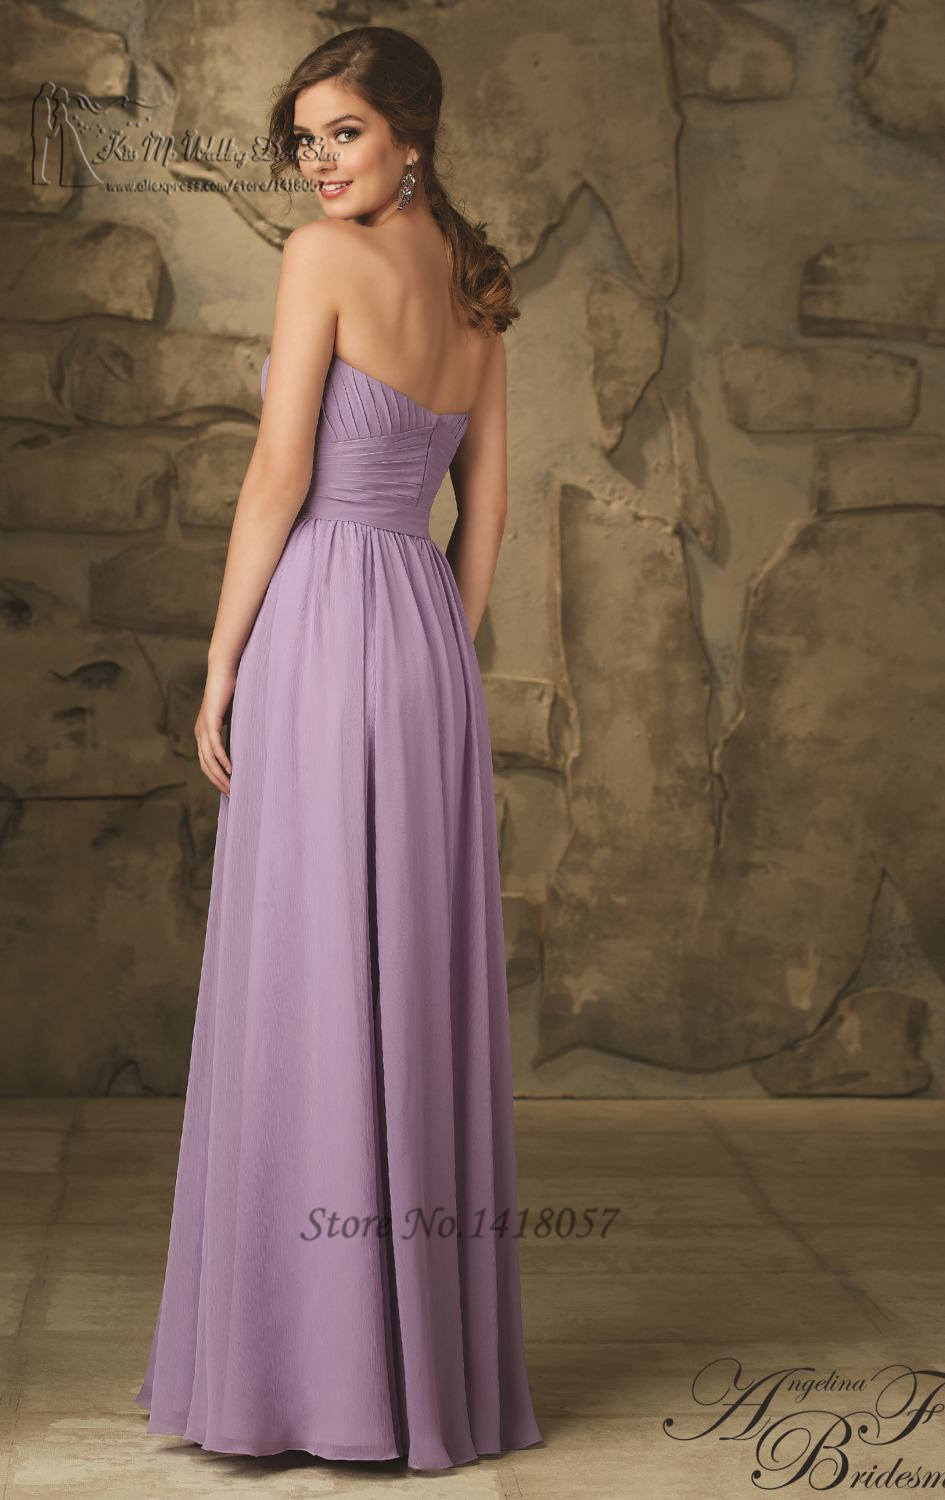 Free shipping cheap purple bridesmaid dresses 2016 vestido de free shipping cheap purple bridesmaid dresses 2016 vestido de madrinha de casamento longo long wedding party dress pleat in bridesmaid dresses from weddings ombrellifo Image collections